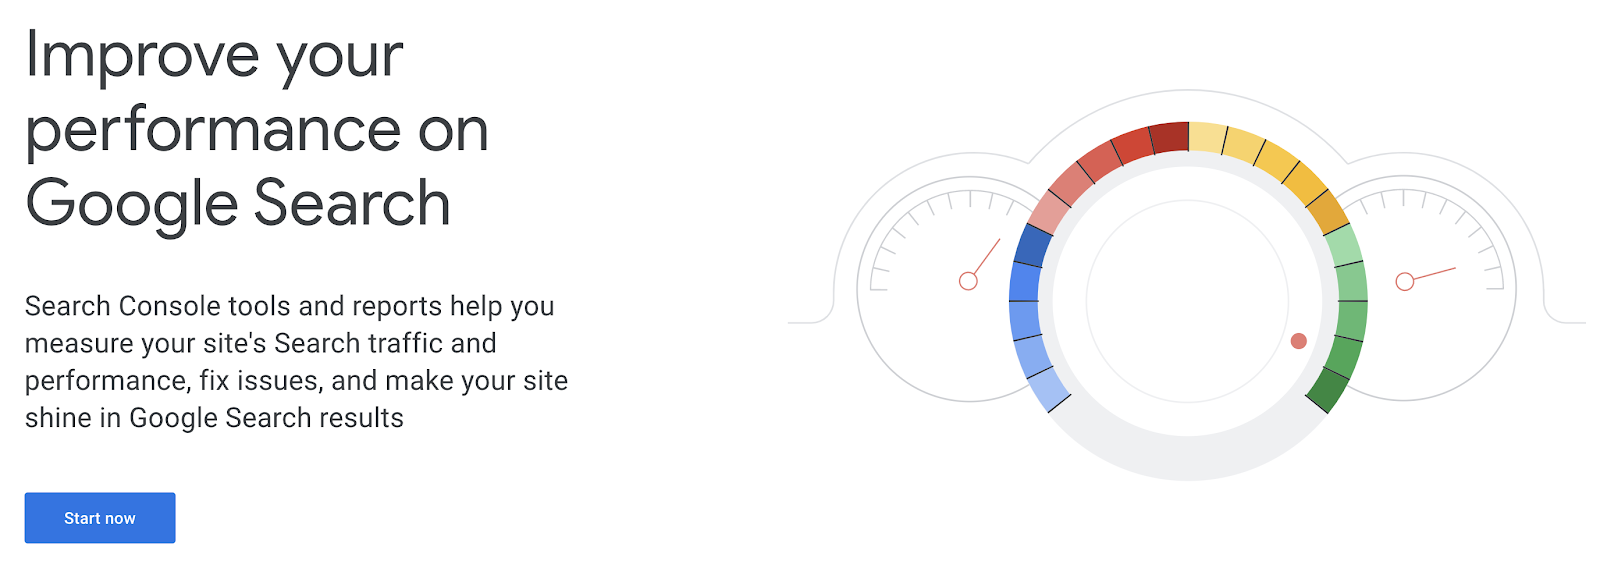 Search Console tools and reports to measure your site's search traffic.